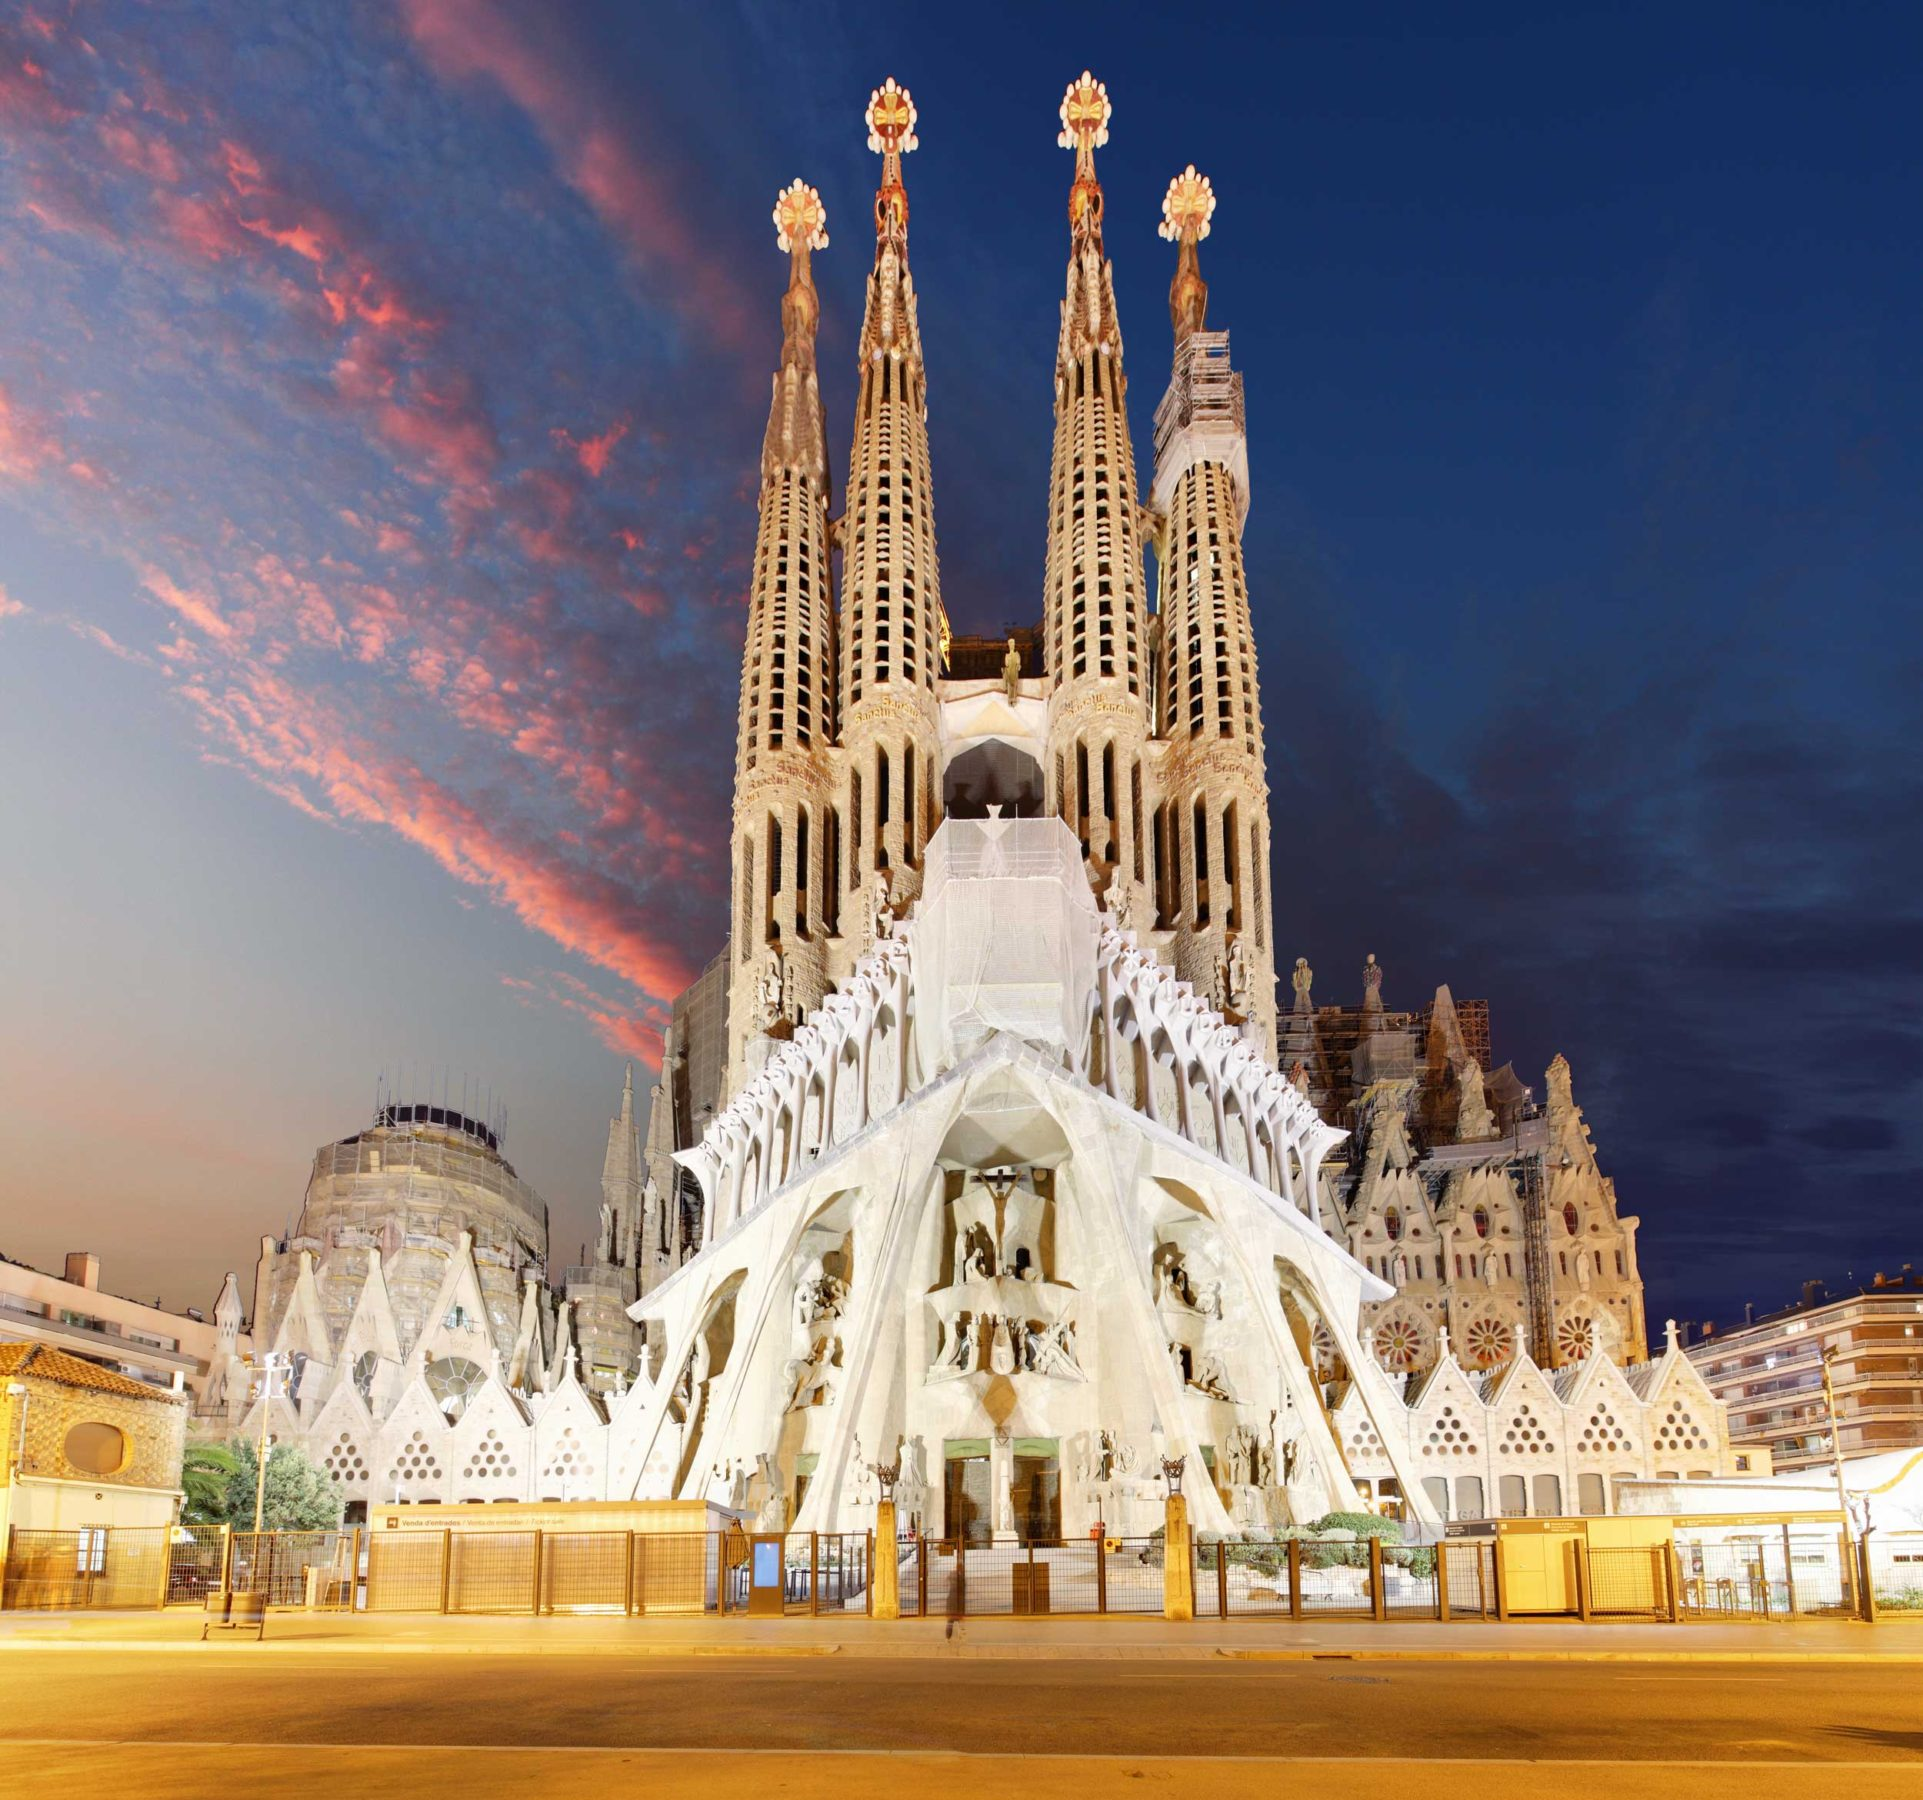 A brightly-lit, elaborately-designed, multi-spired cathedaral in Barcelona, Spain